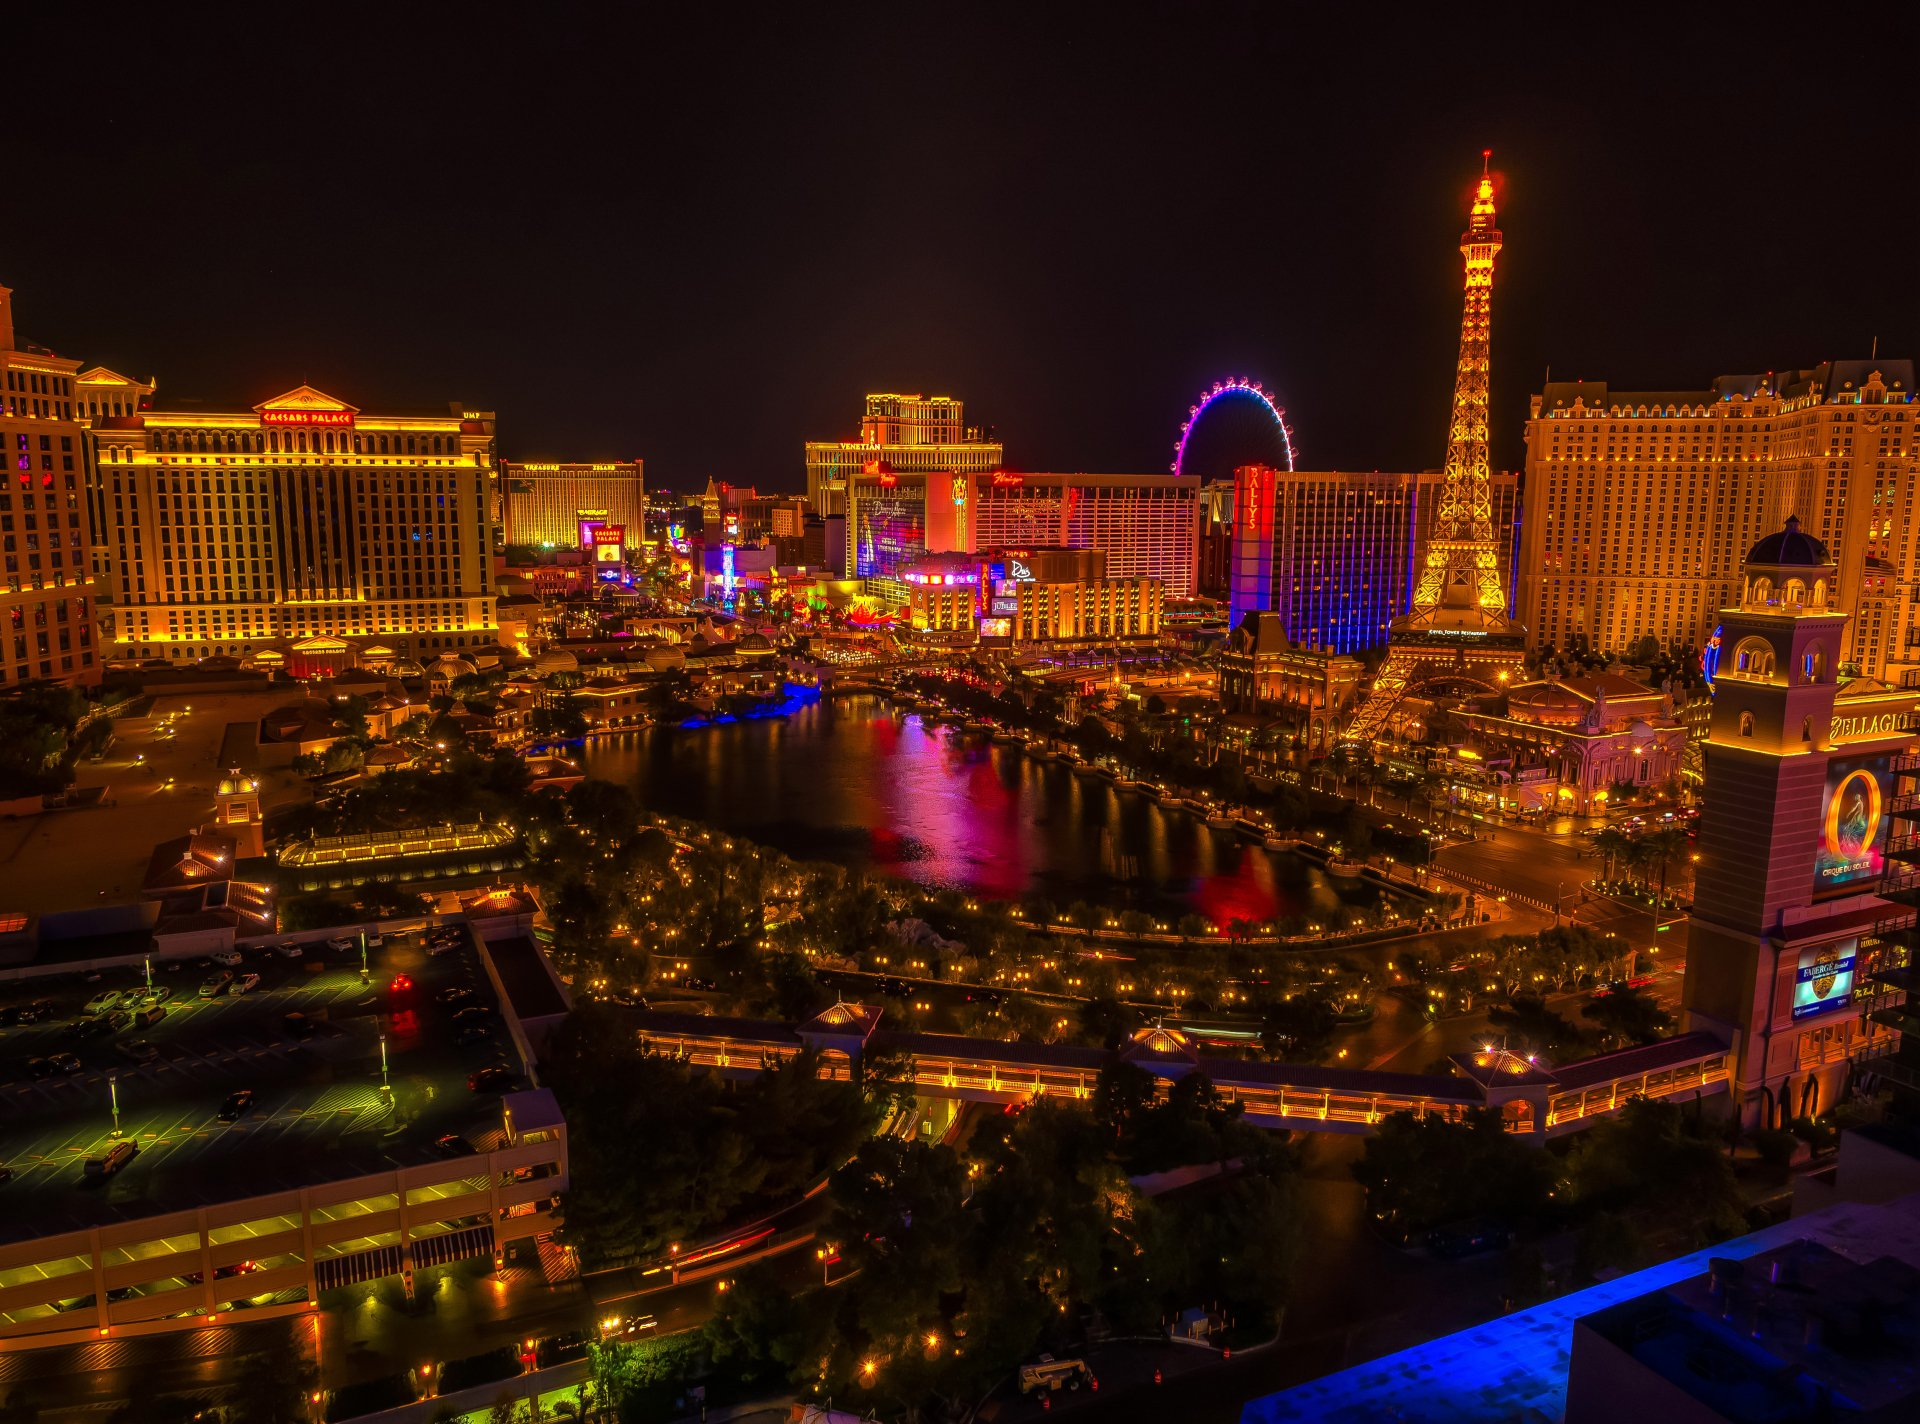 Nighttime in las vegas 4k ultra hd wallpaper background image 4584x3400 id 747950 - Las vegas wallpaper 4k ...